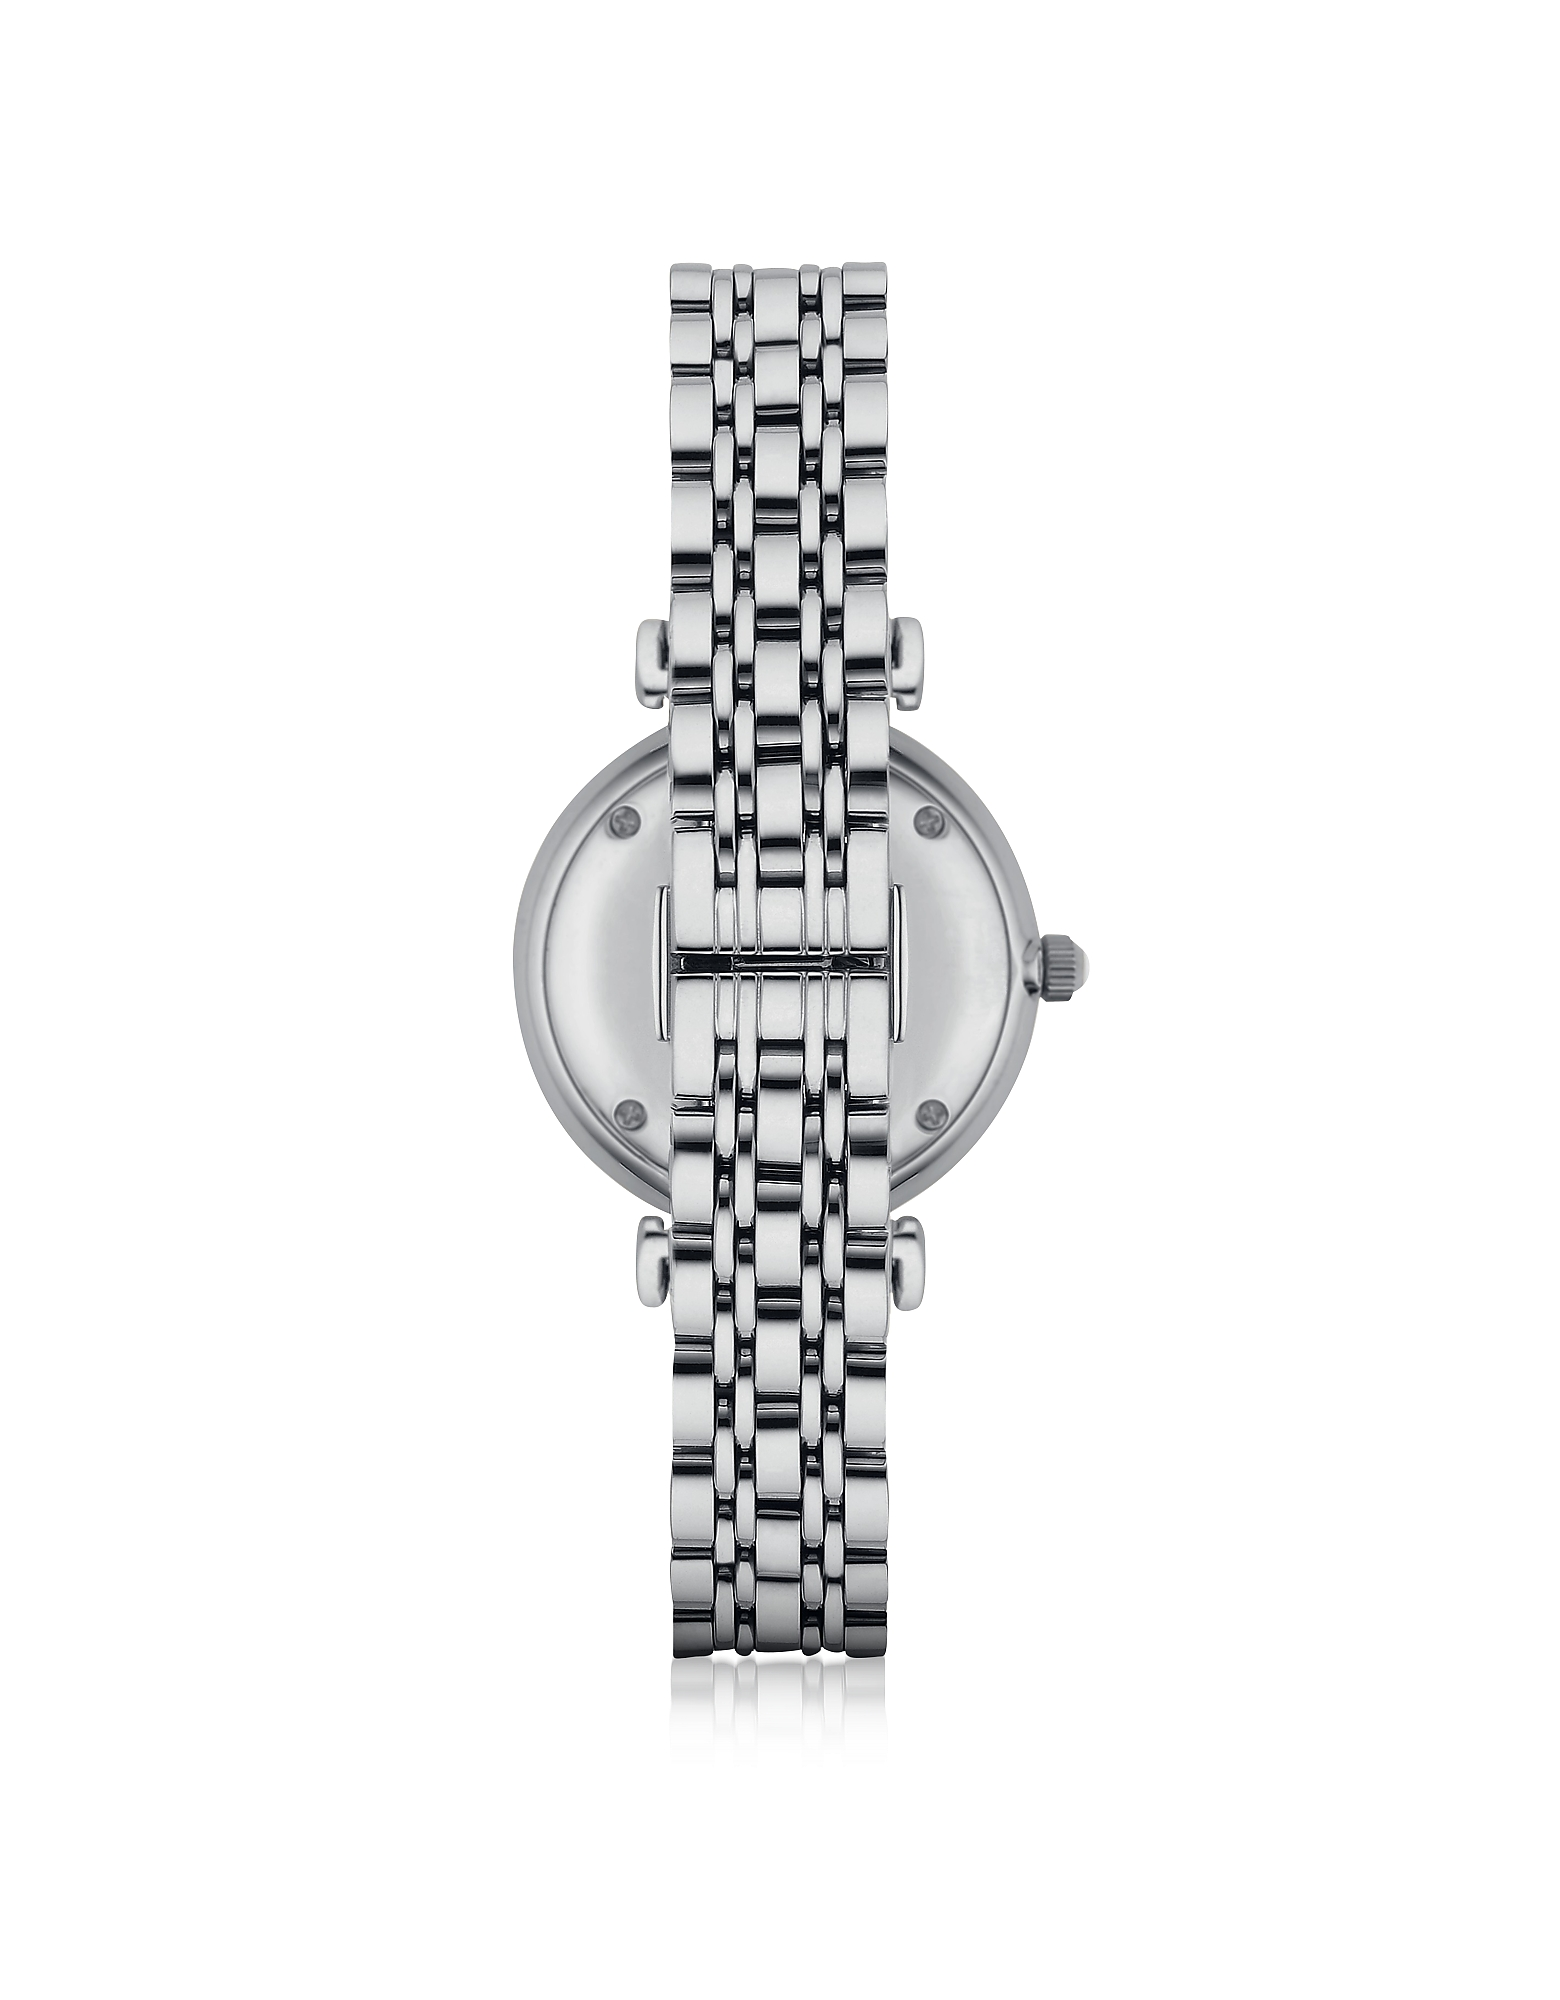 T-Bar Silvertone Stainless Steel Women's Watch w/Mother of Pearl and Crystals Dial от Forzieri.com INT